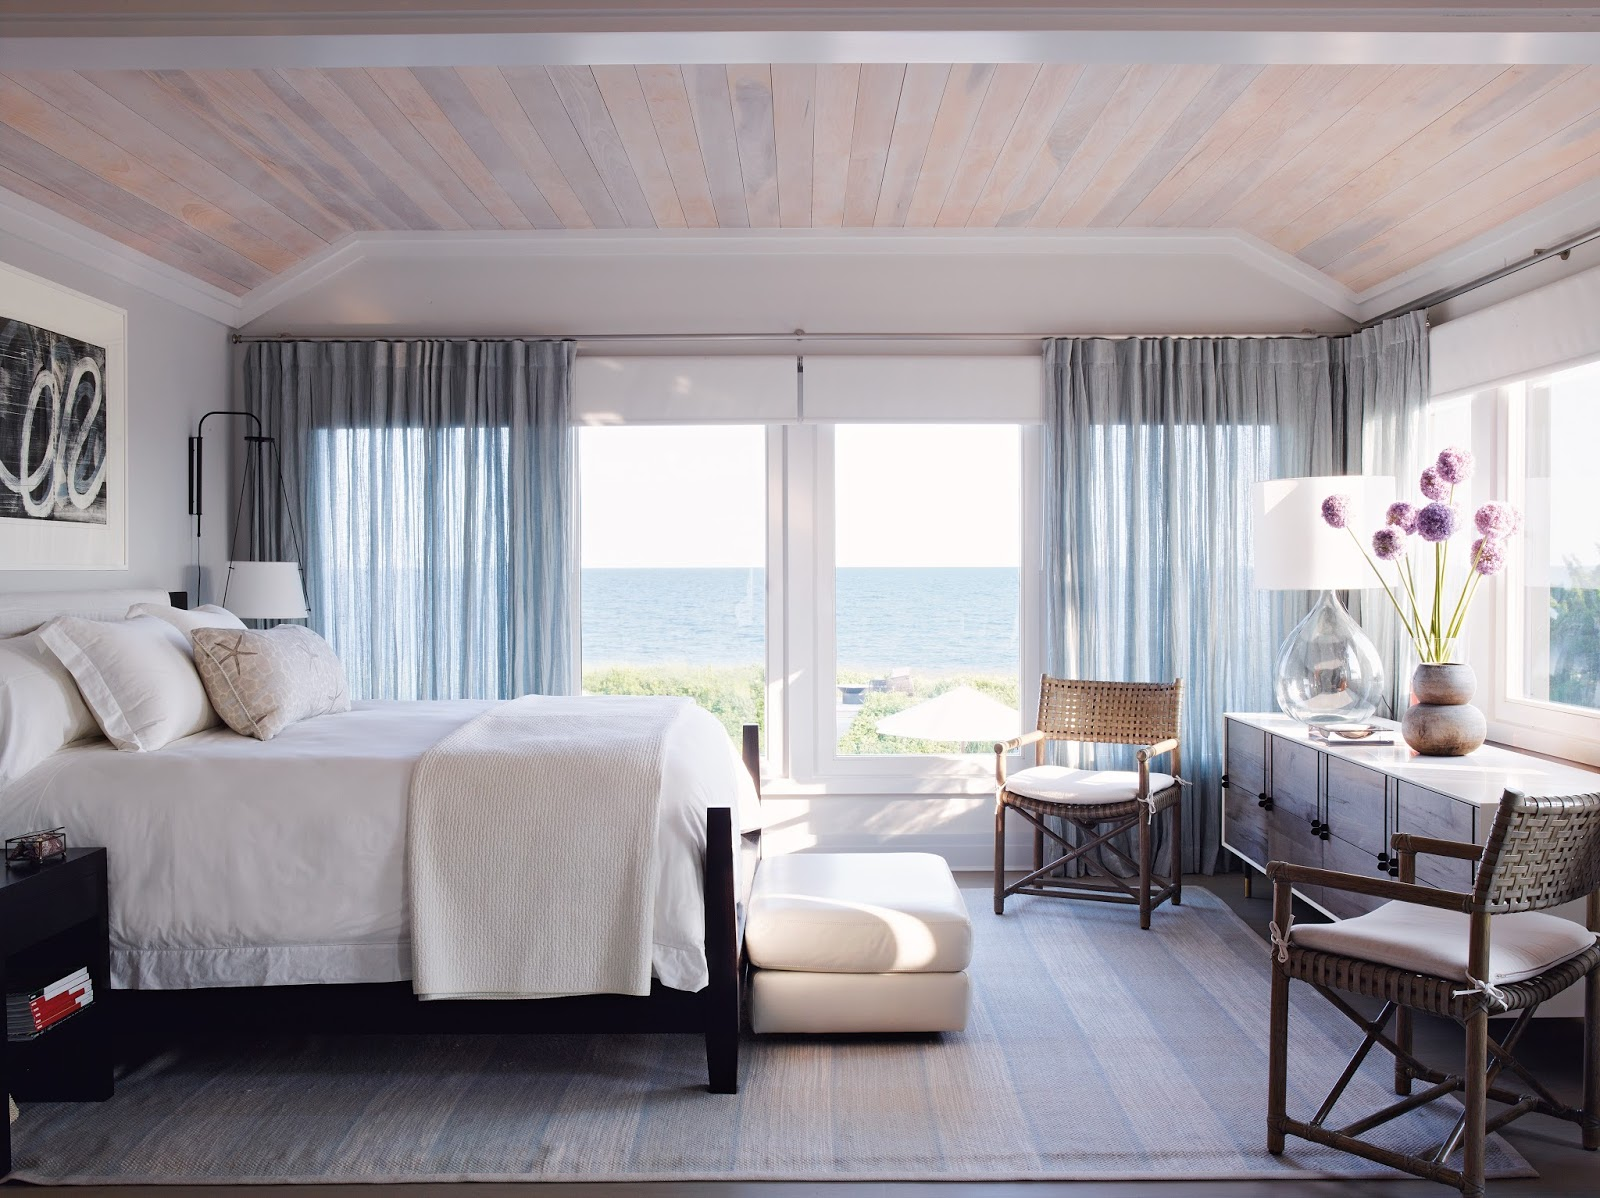 Interior Designer Ray Booth Is A Partner In The Prestigious McALPINE Firm,  Who Divides His Time Between New York And Nashville. Boothu0027s Furniture Line  Is In ...